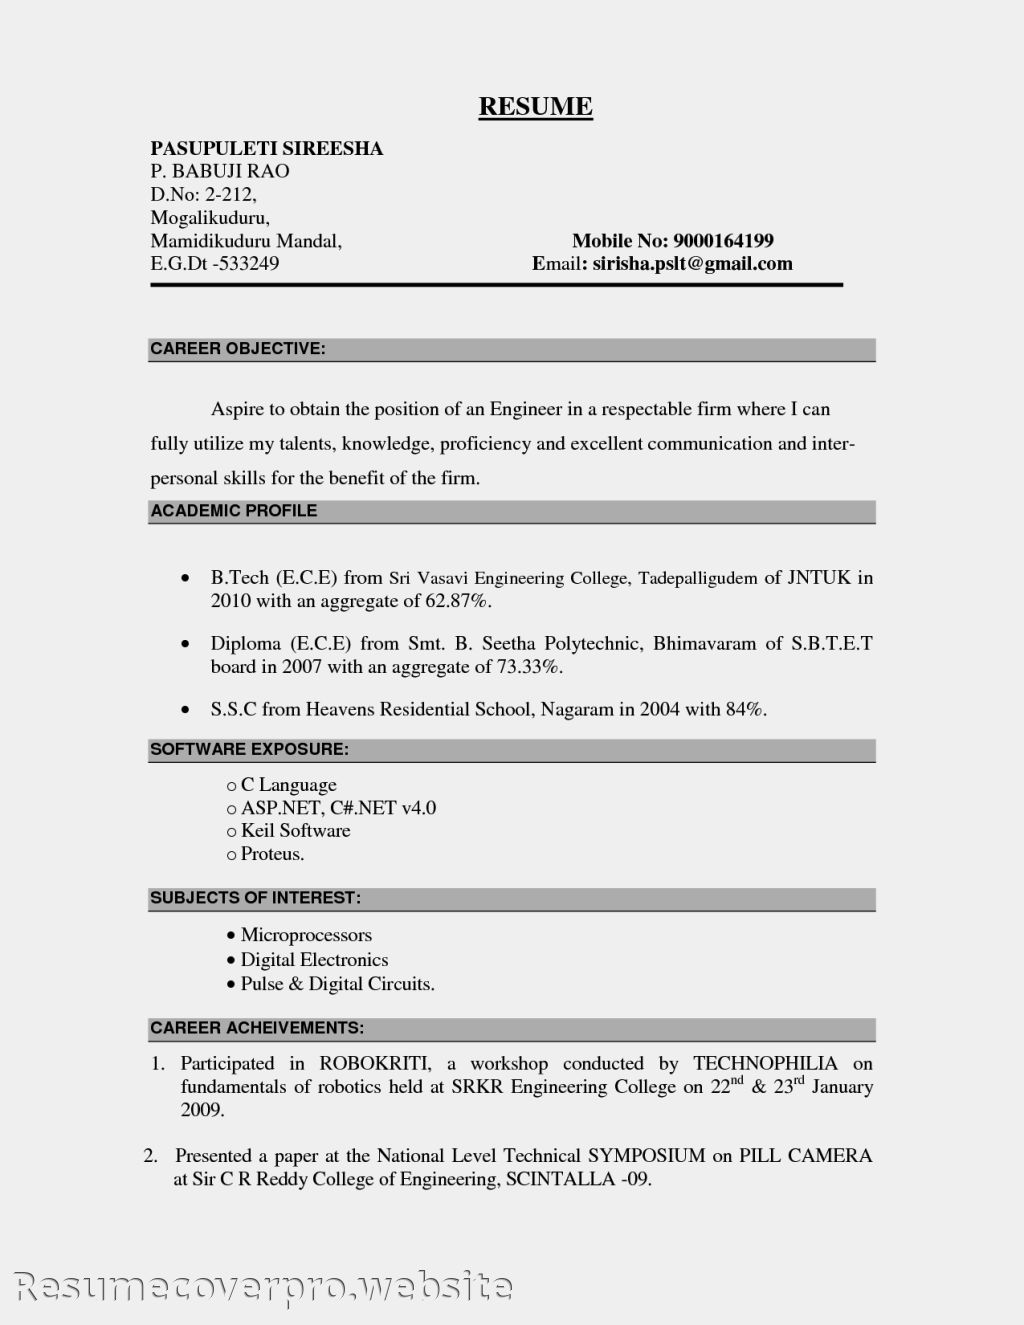 career objectives for resumes examples com career objectives for resumes examples